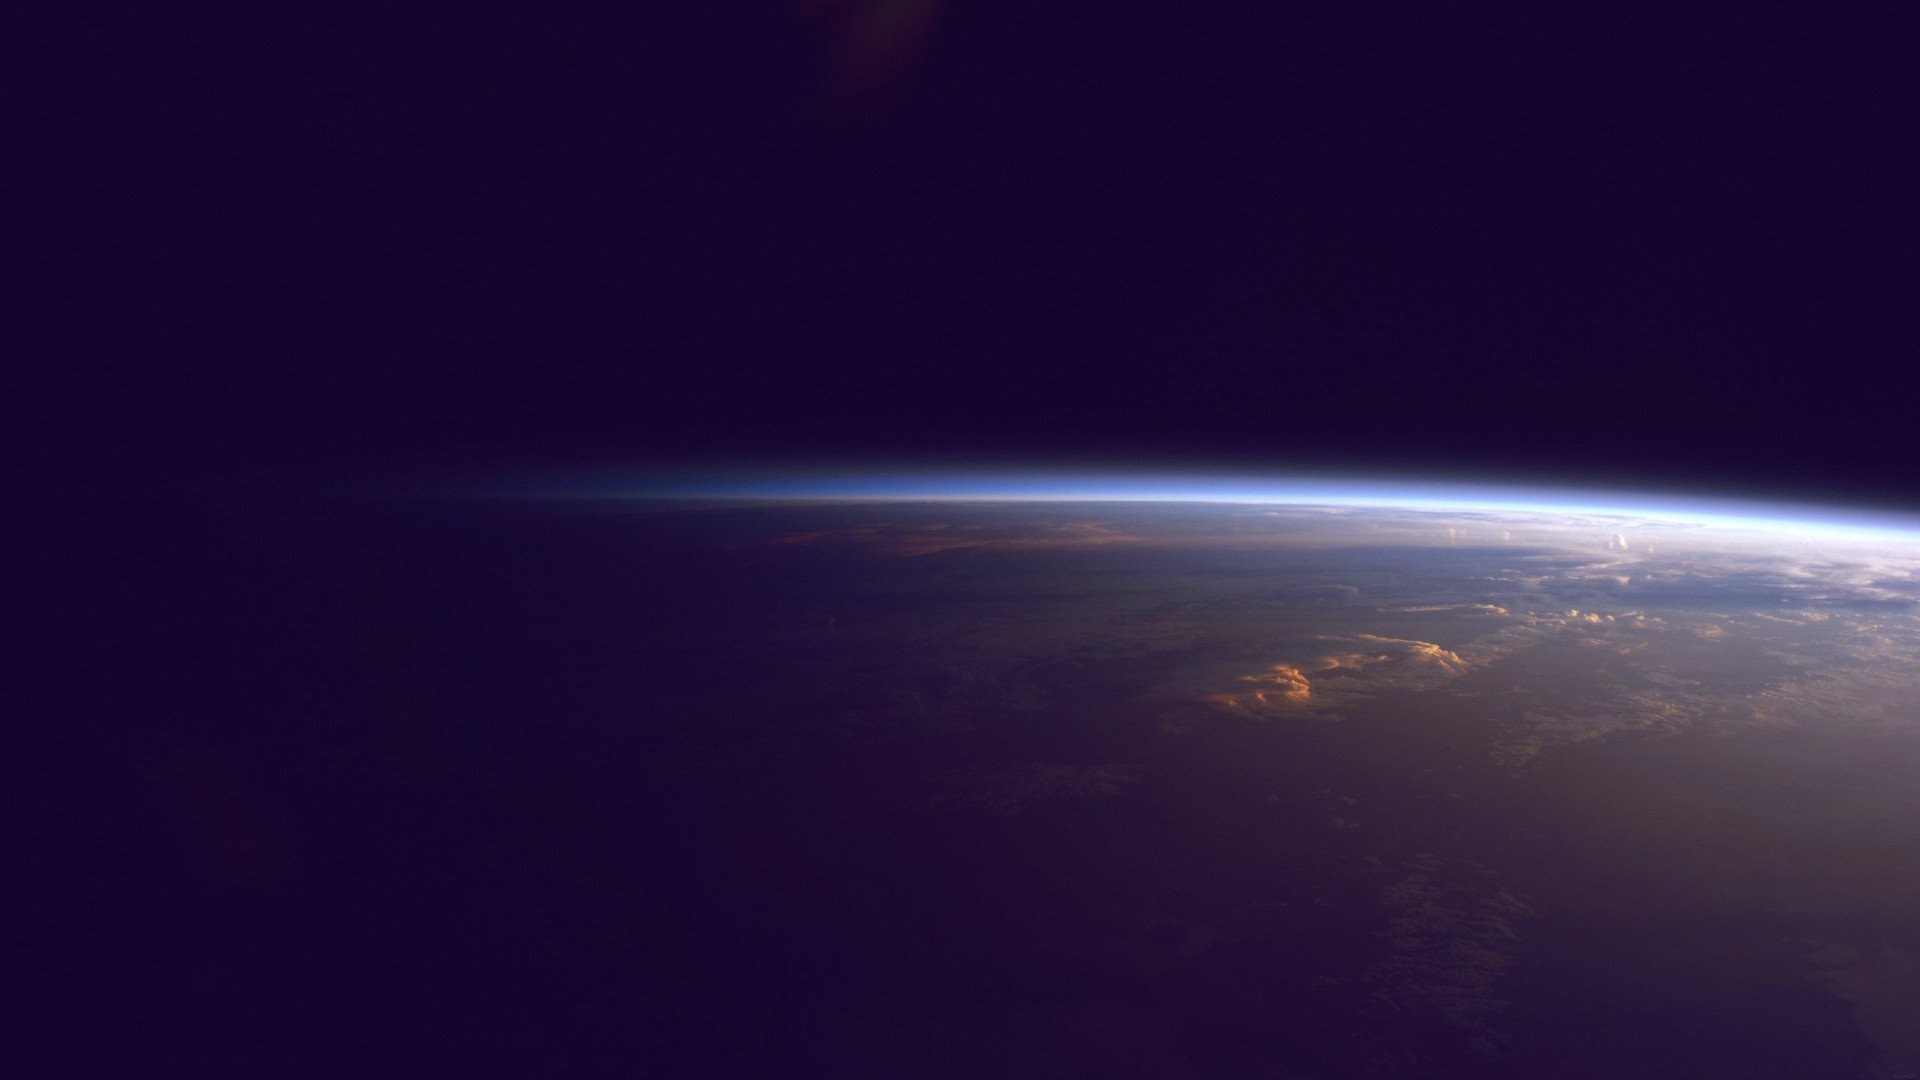 earth from orbit - photo #3